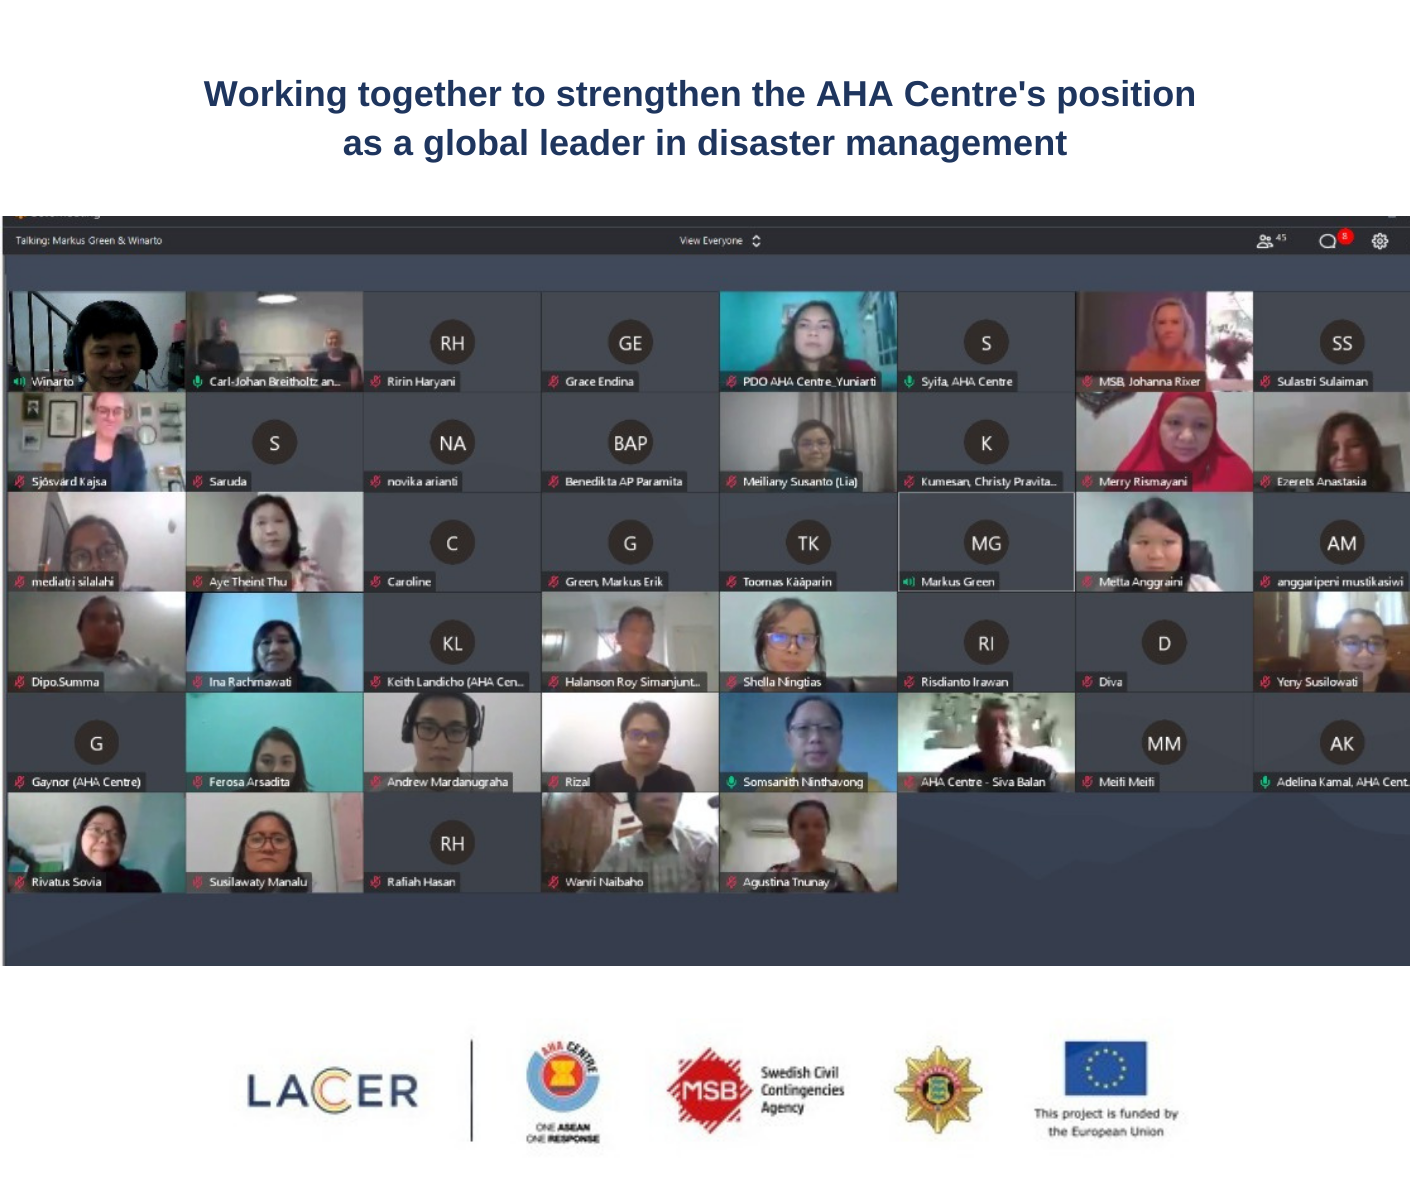 Interactive online workshop with staff from the AHA Centre in Indonesia and the implementing consortium in Sweden and Estonia.